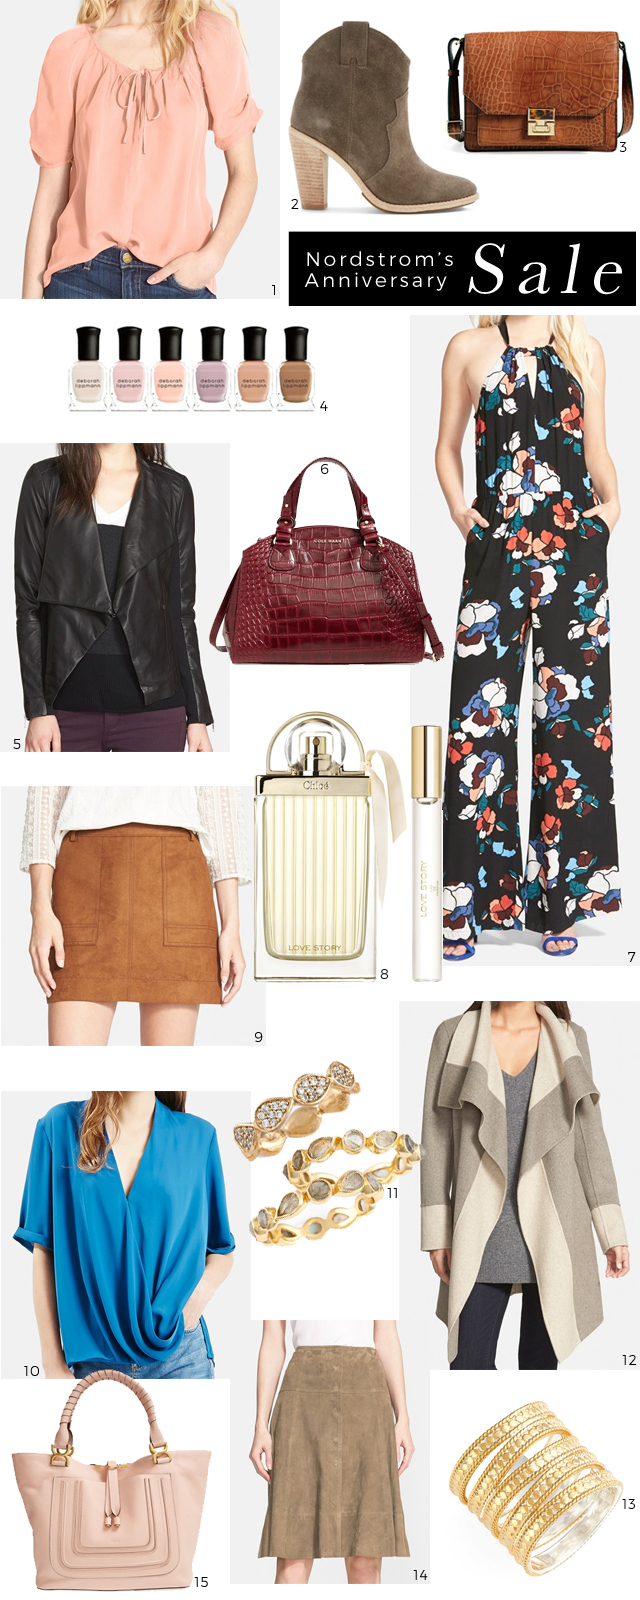 nordstrom-anniversary-sale-72015